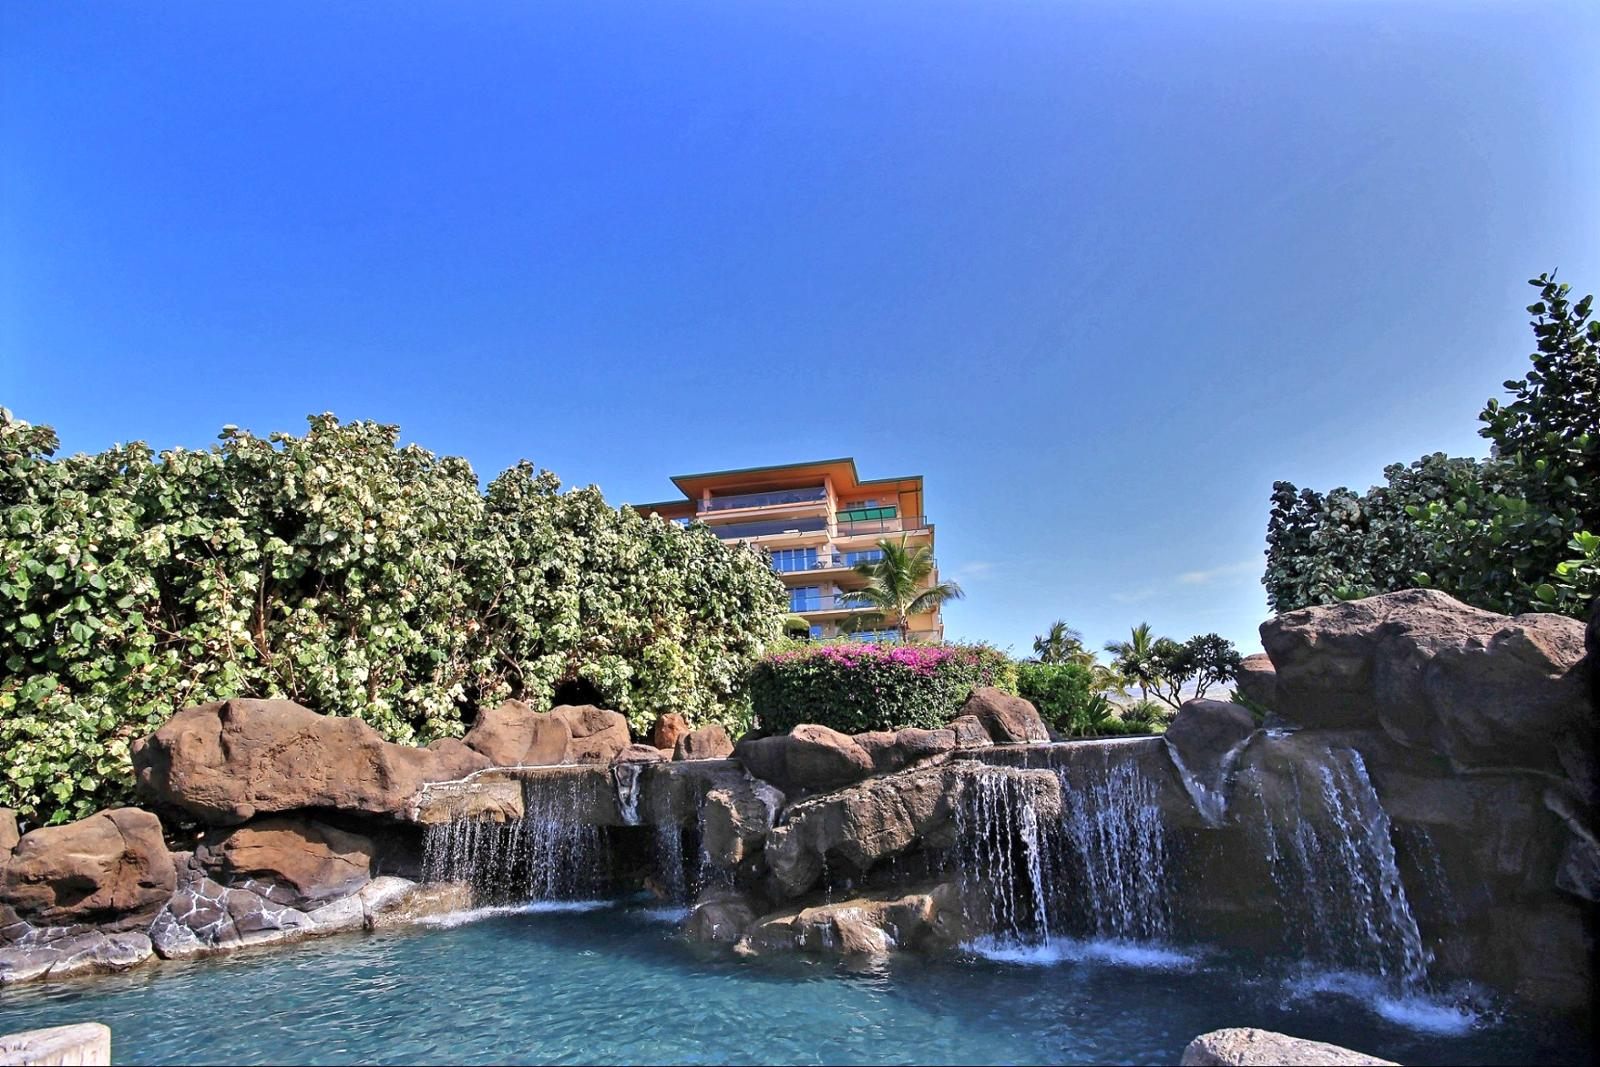 The middle pool with waterfalls is perfect for relaxing with the family